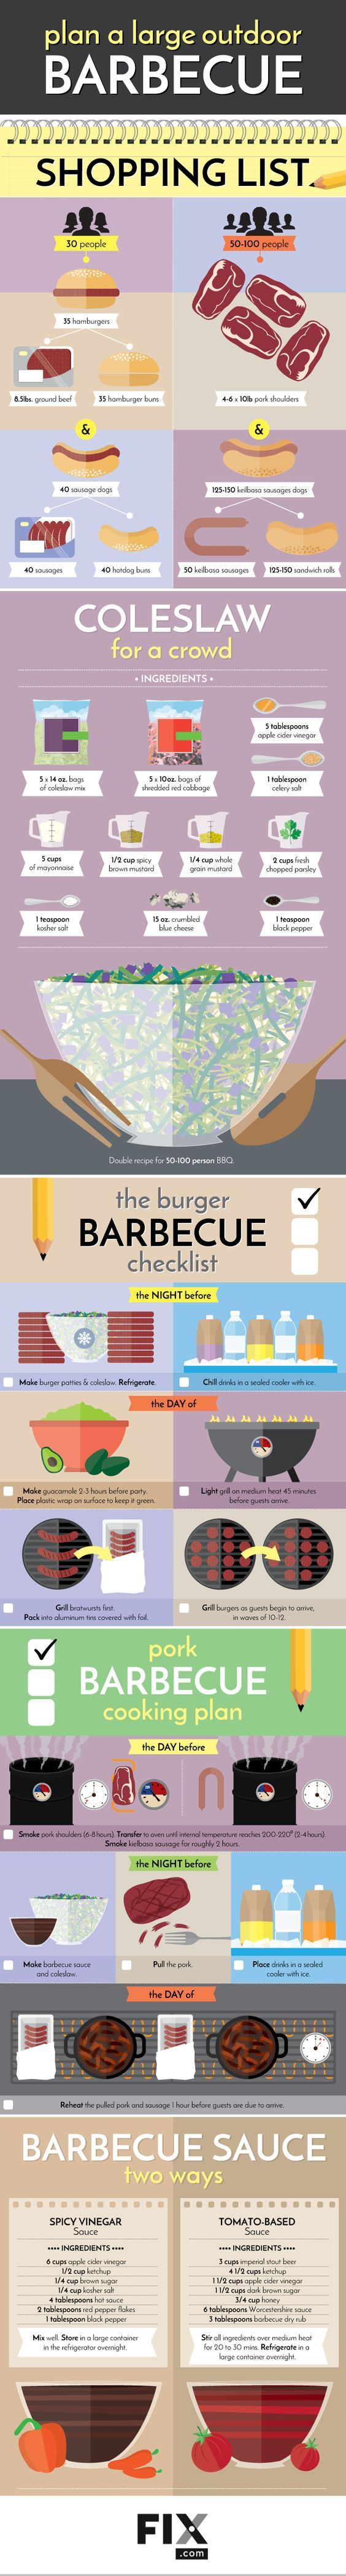 Our guide for hosting a large BBQ is great for graduations, rehearsal dinners and more! #DIY #BackyardBBQ::